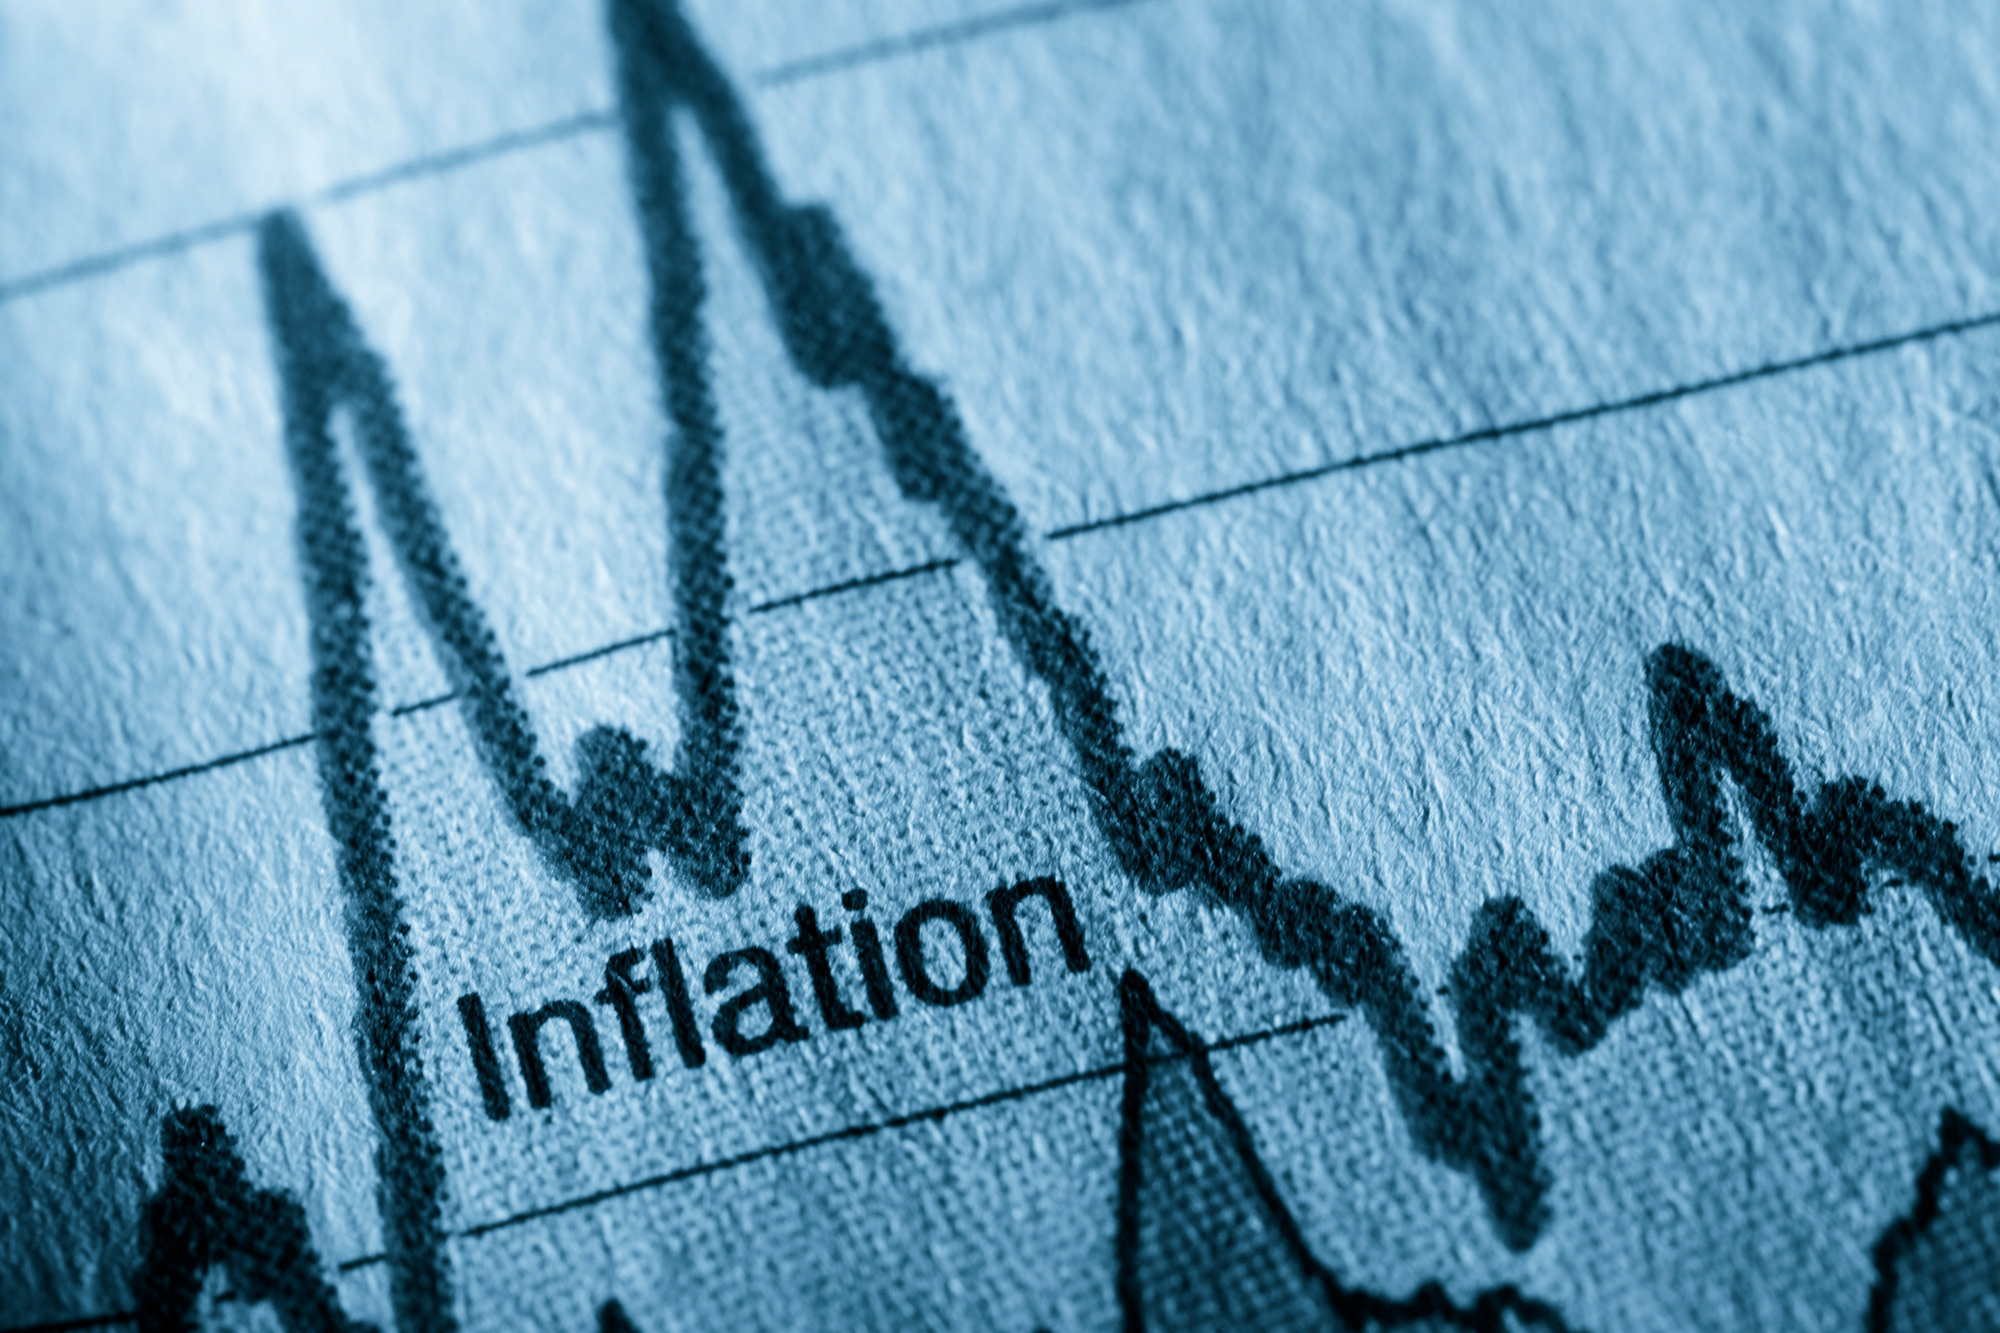 High inflation – is it coming to stay?